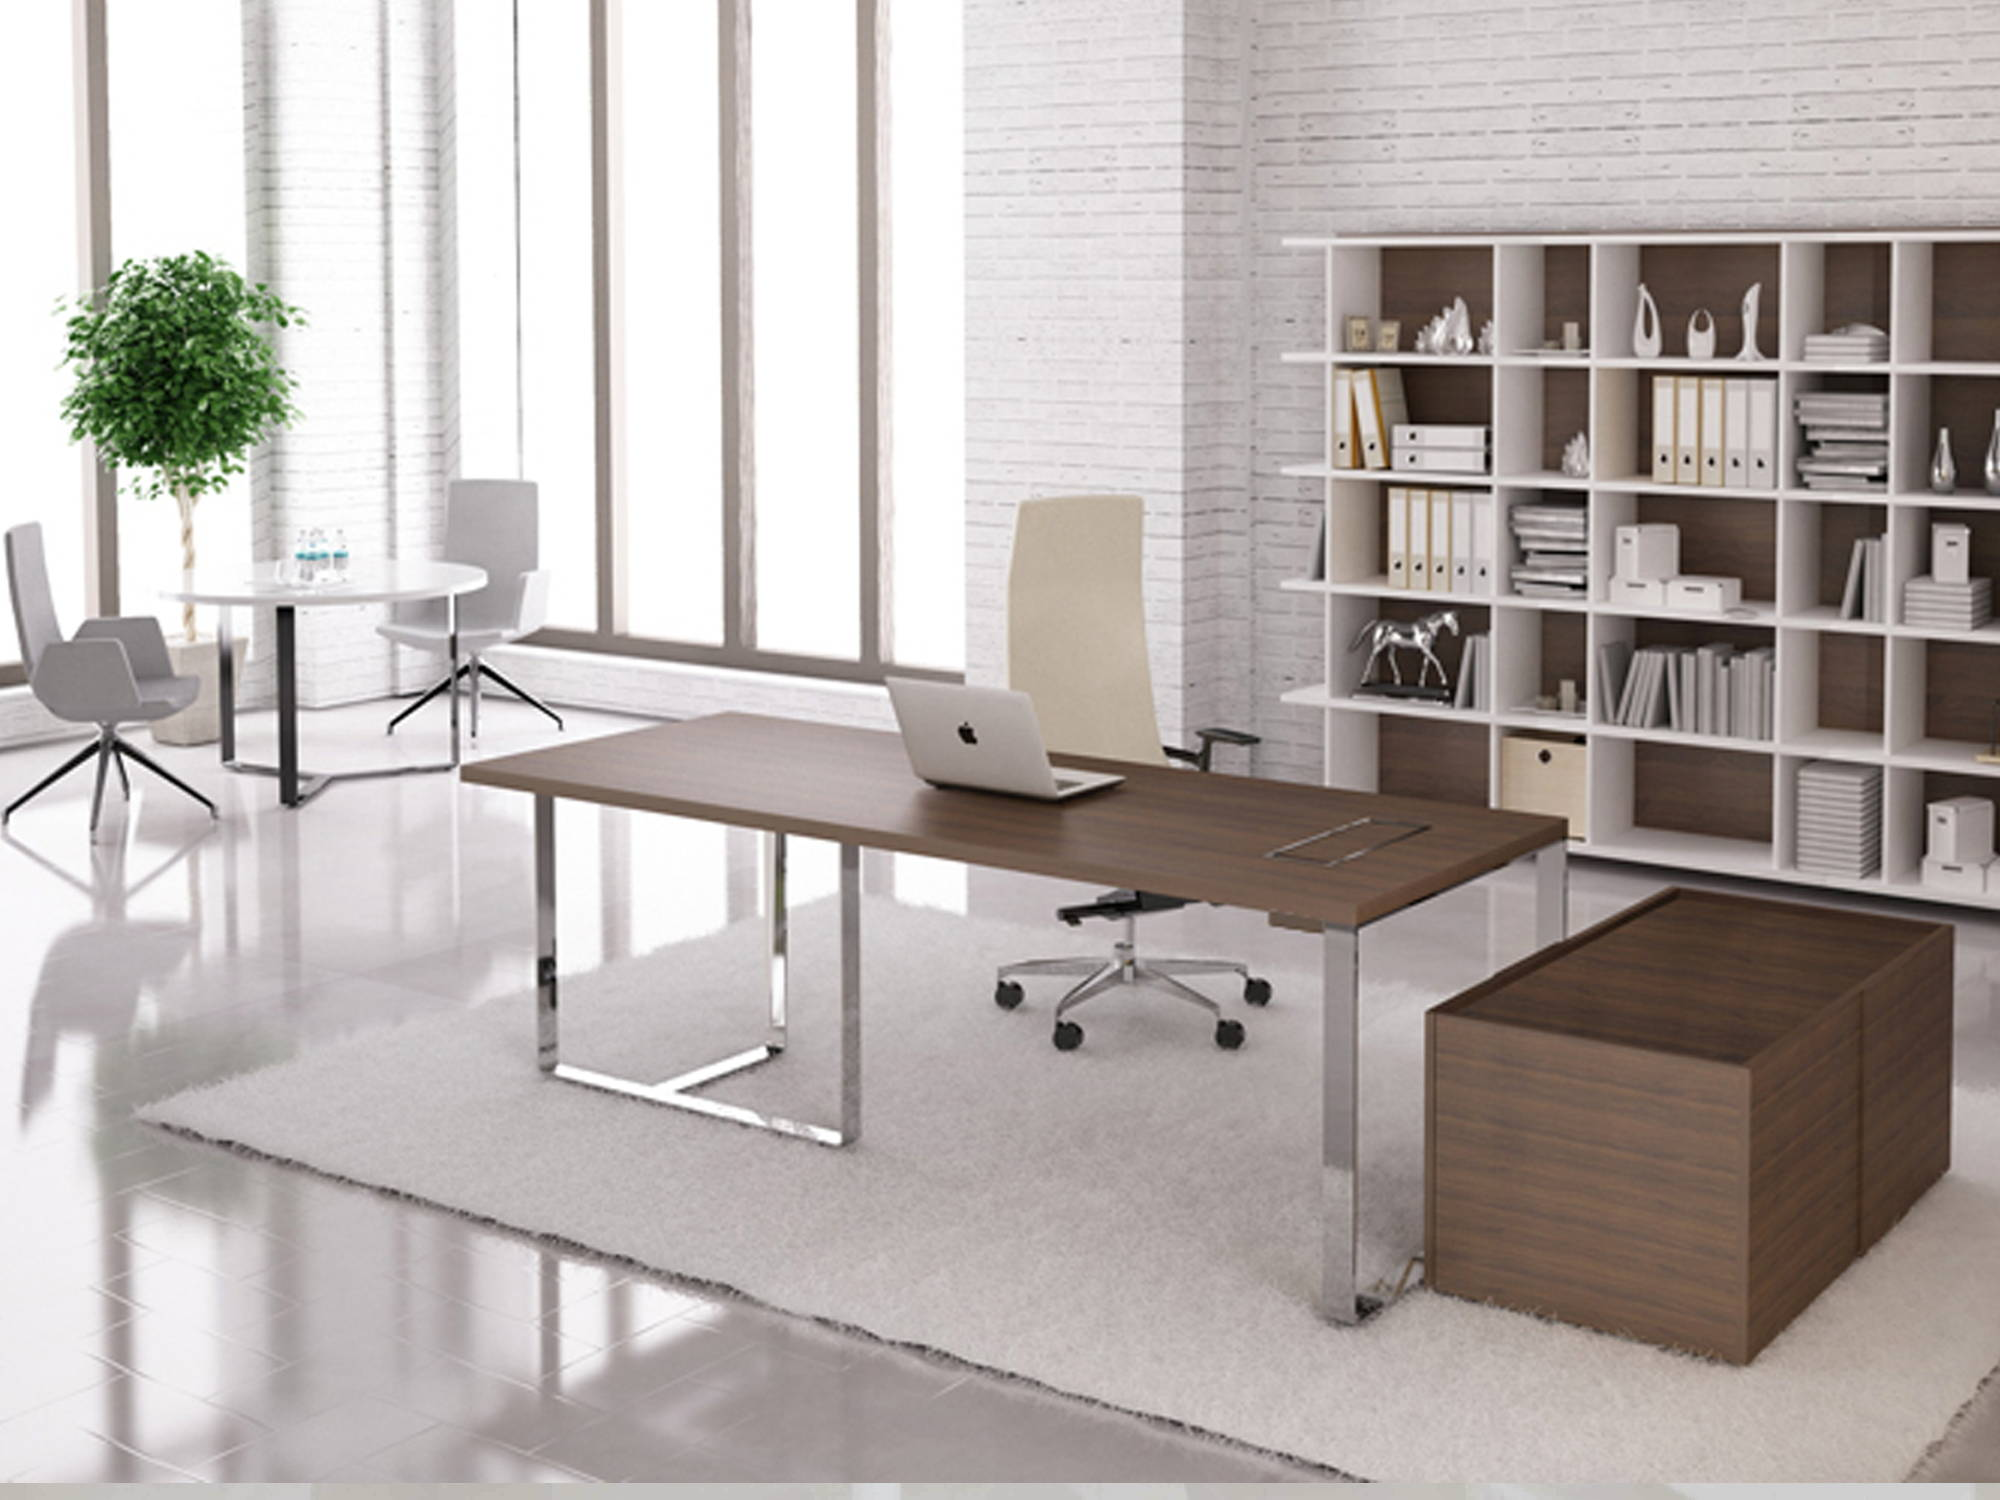 Office_furniture_supplies(2).jpg